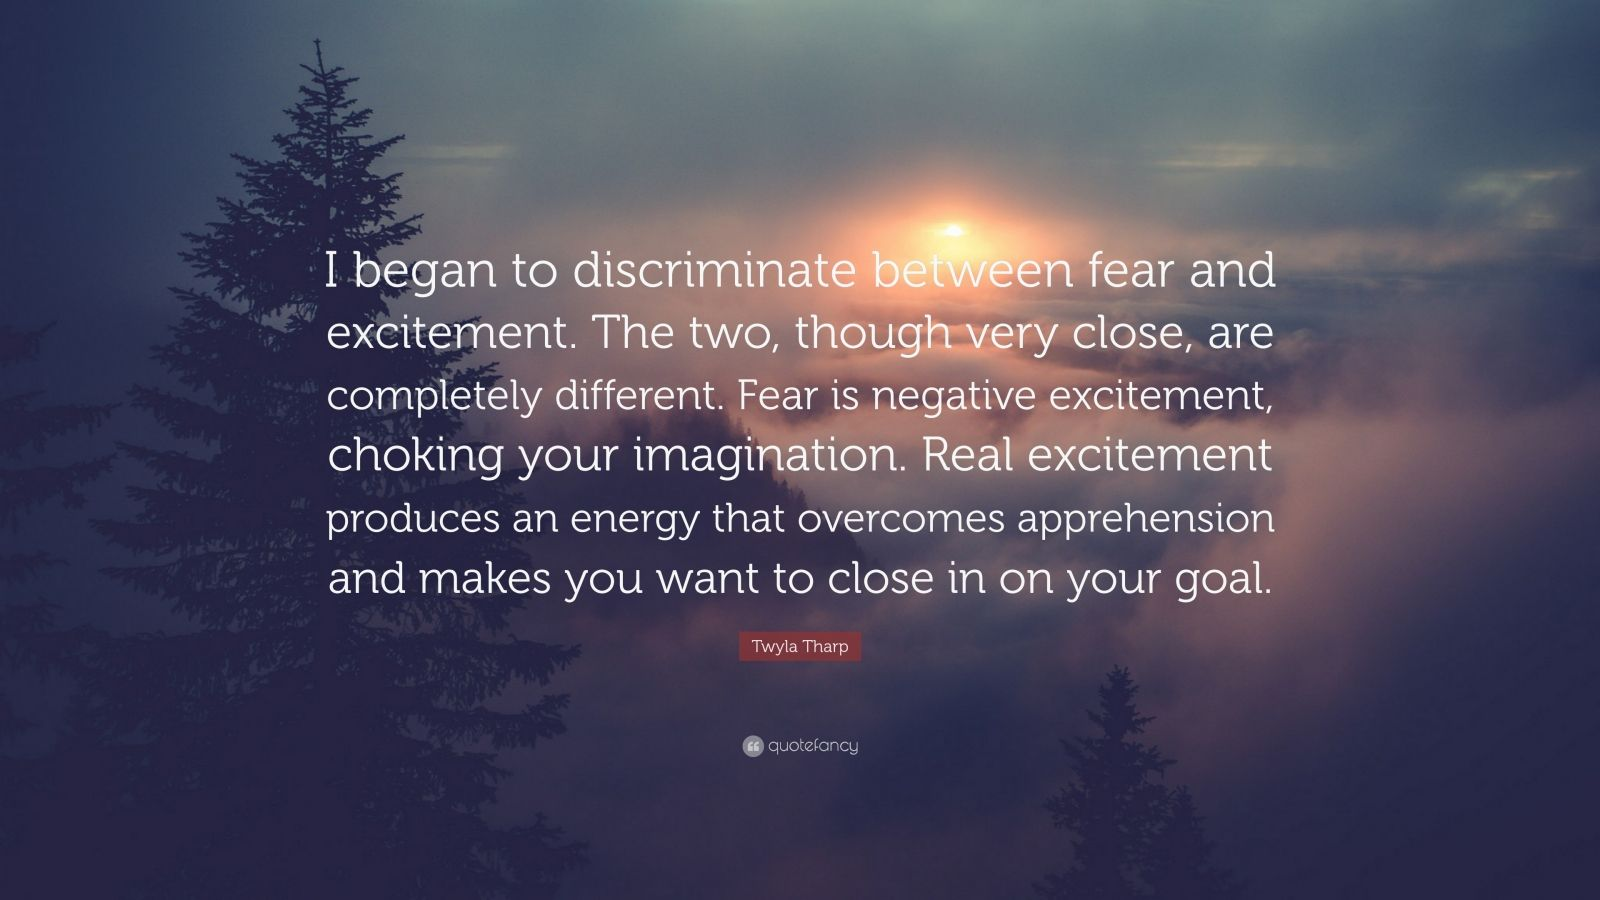 """Twyla Tharp Quote: """"I began to discriminate between fear and excitement. The two, though very close, are completely different. Fear is negative excitement, choking your imagination. Real excitement produces an energy that overcomes apprehension and makes you want to close in on your goal."""""""